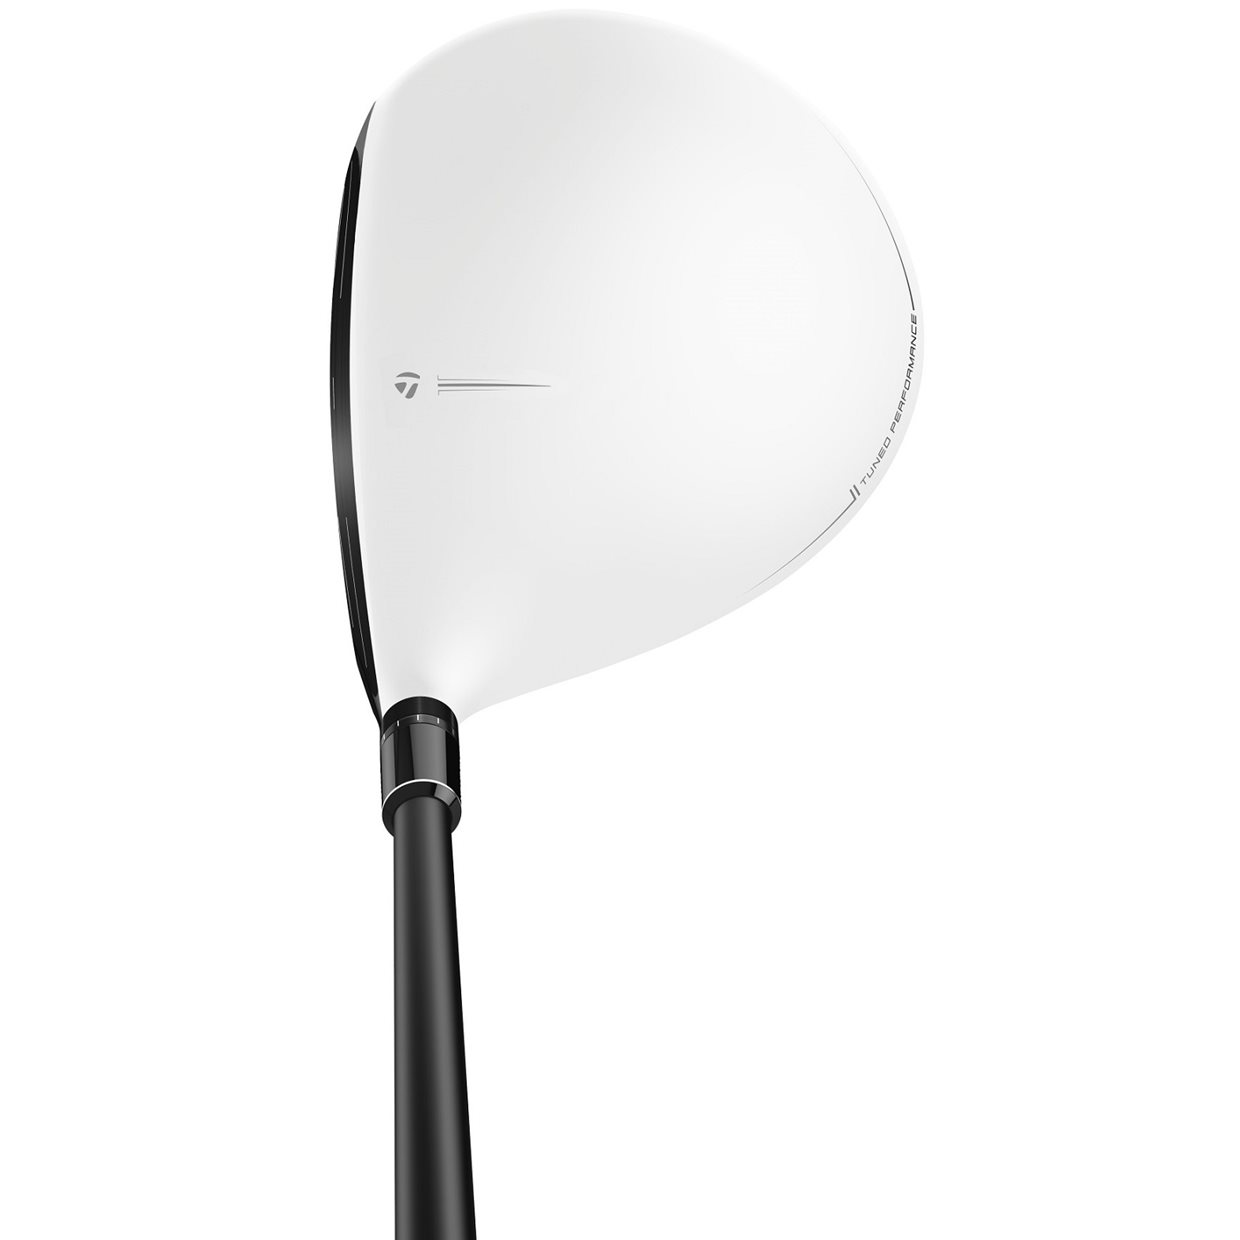 c1ef993f029f0 TaylorMade R15 Driver Preowned Clubs. Alternate Product Image View 1  Alternate Product Image View 2 ...